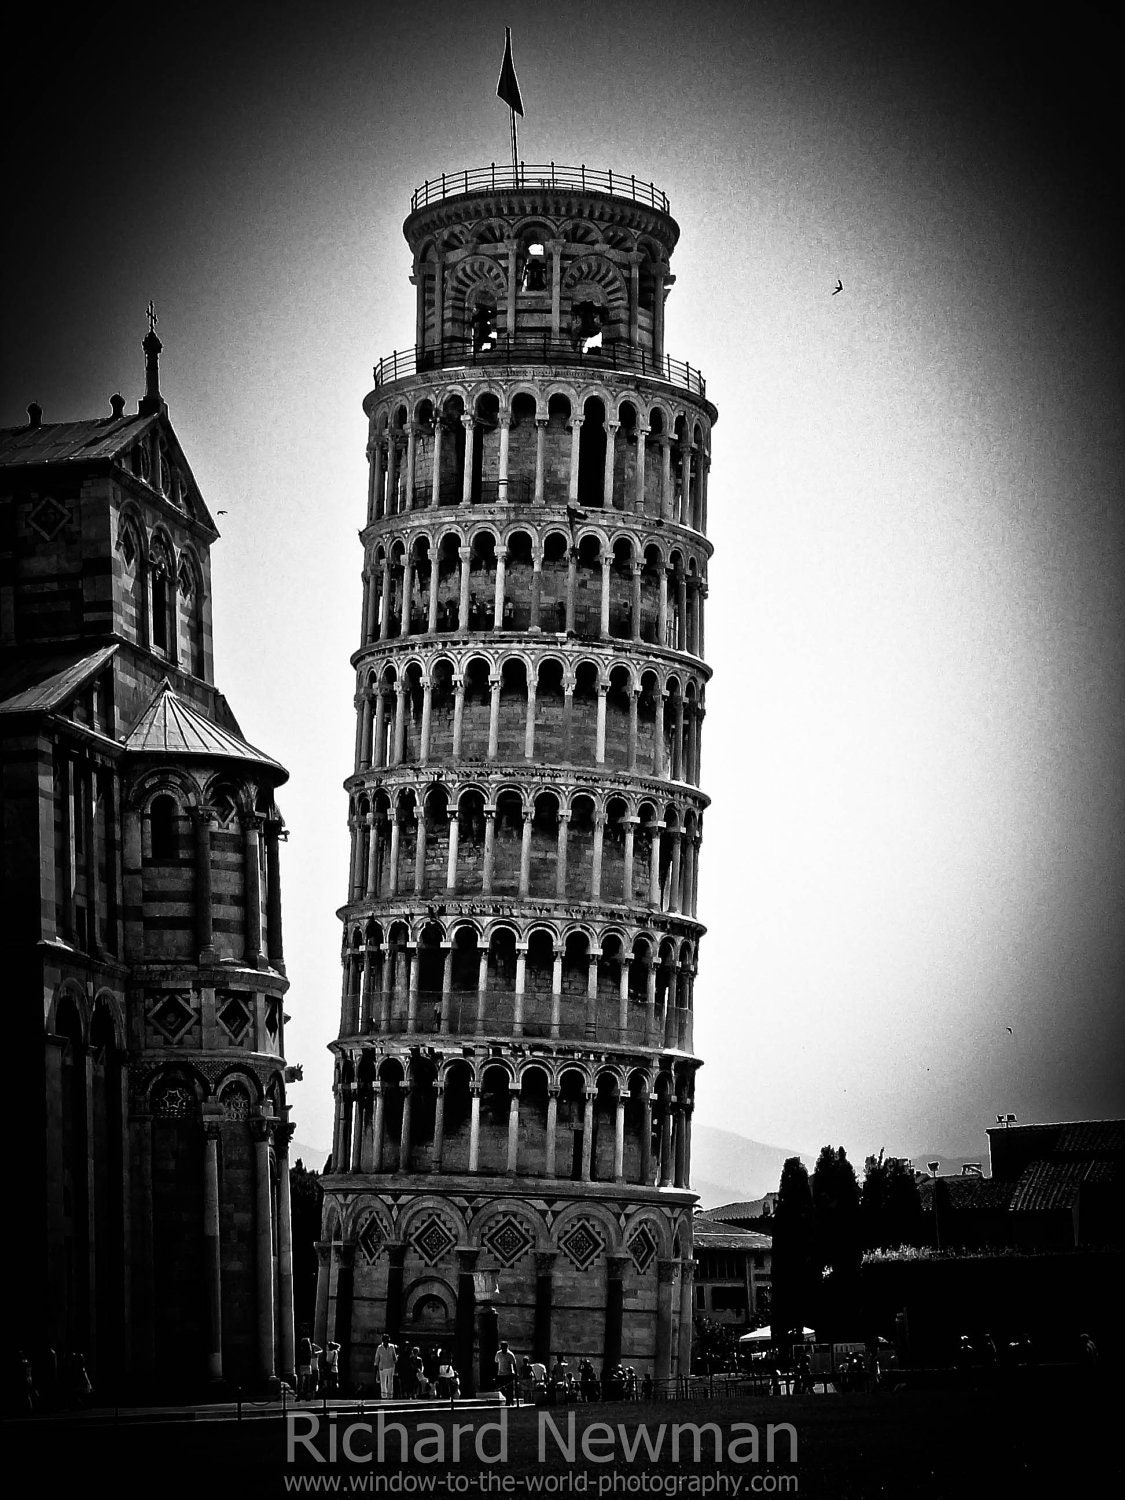 leaning tower of pisa italy historical architecture black